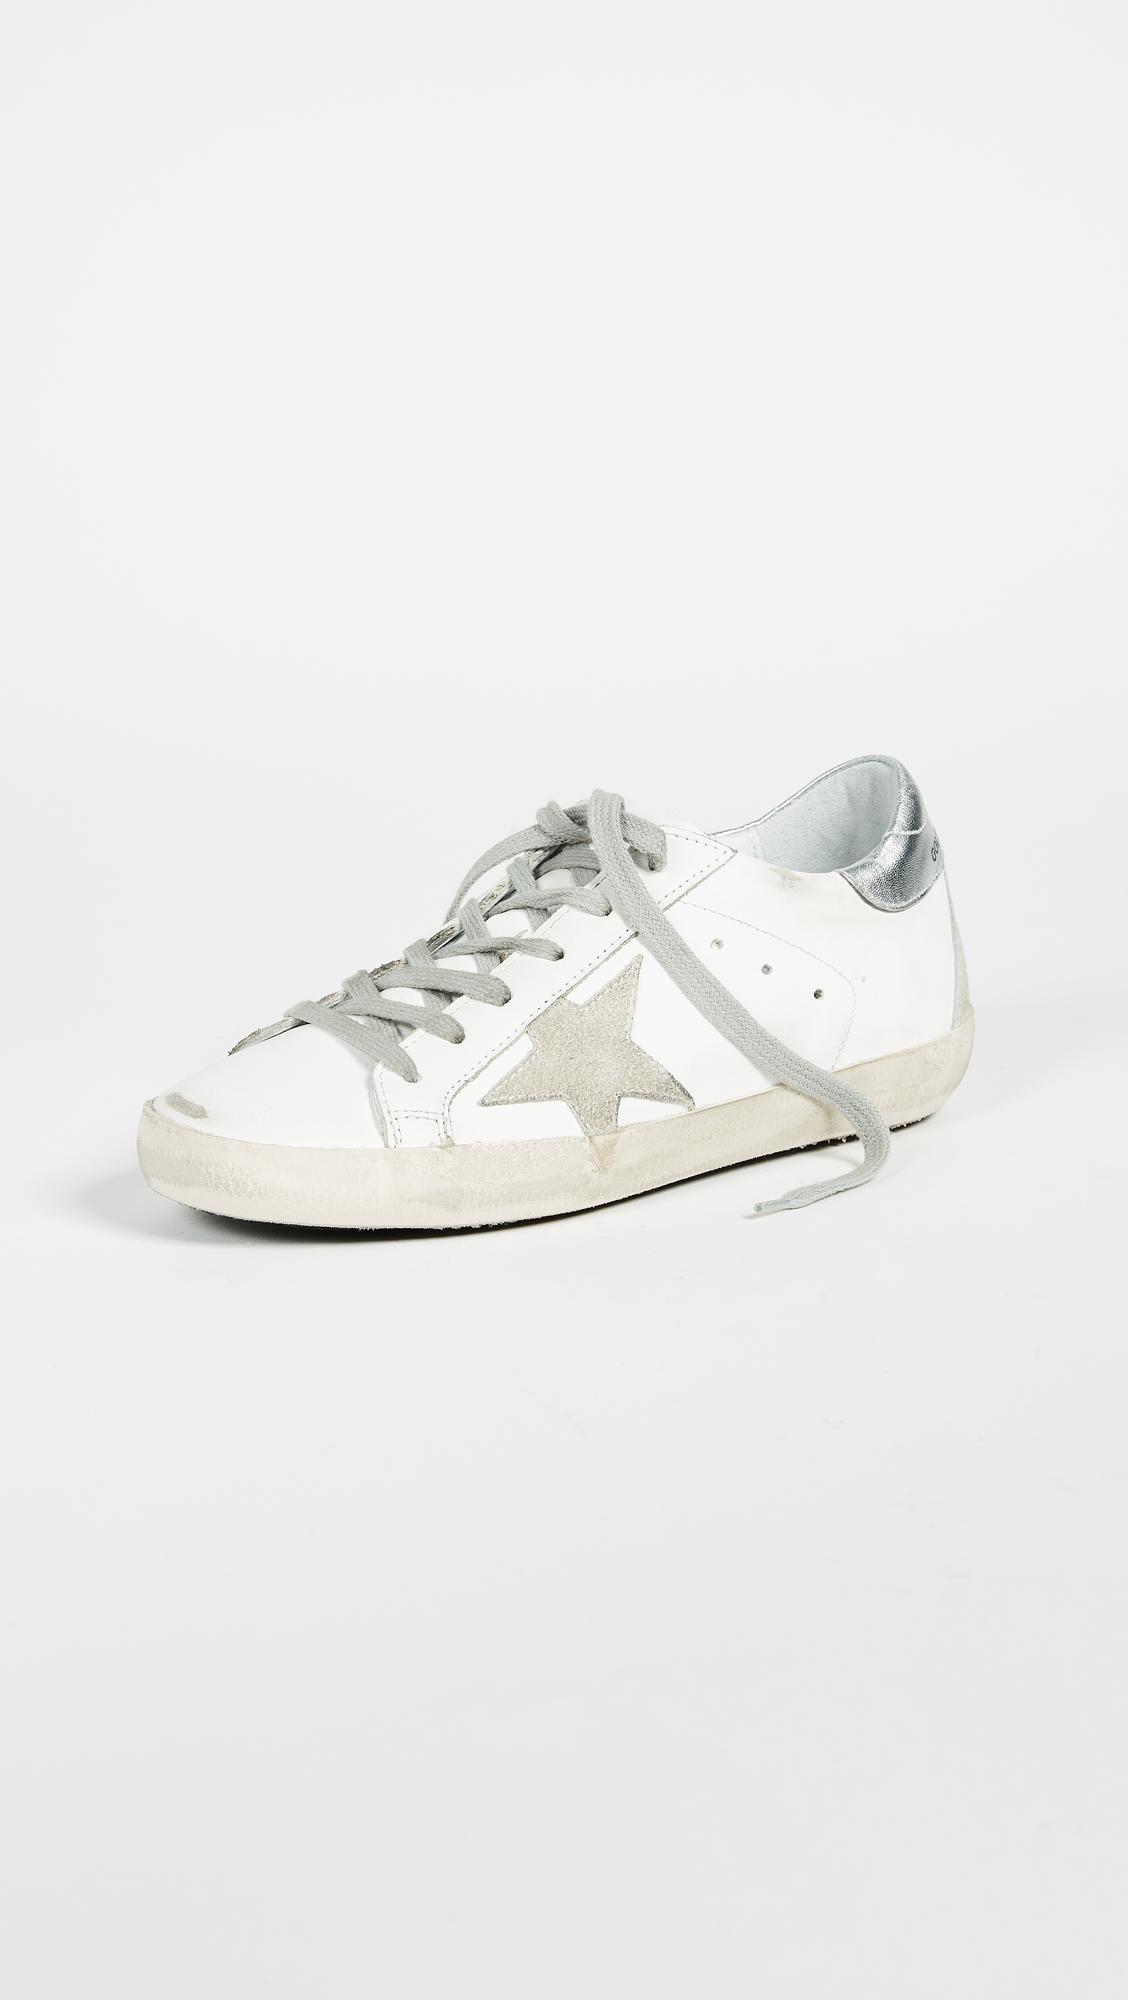 10eb27b9f67b Lyst - Golden Goose Deluxe Brand Superstar Sneakers in White